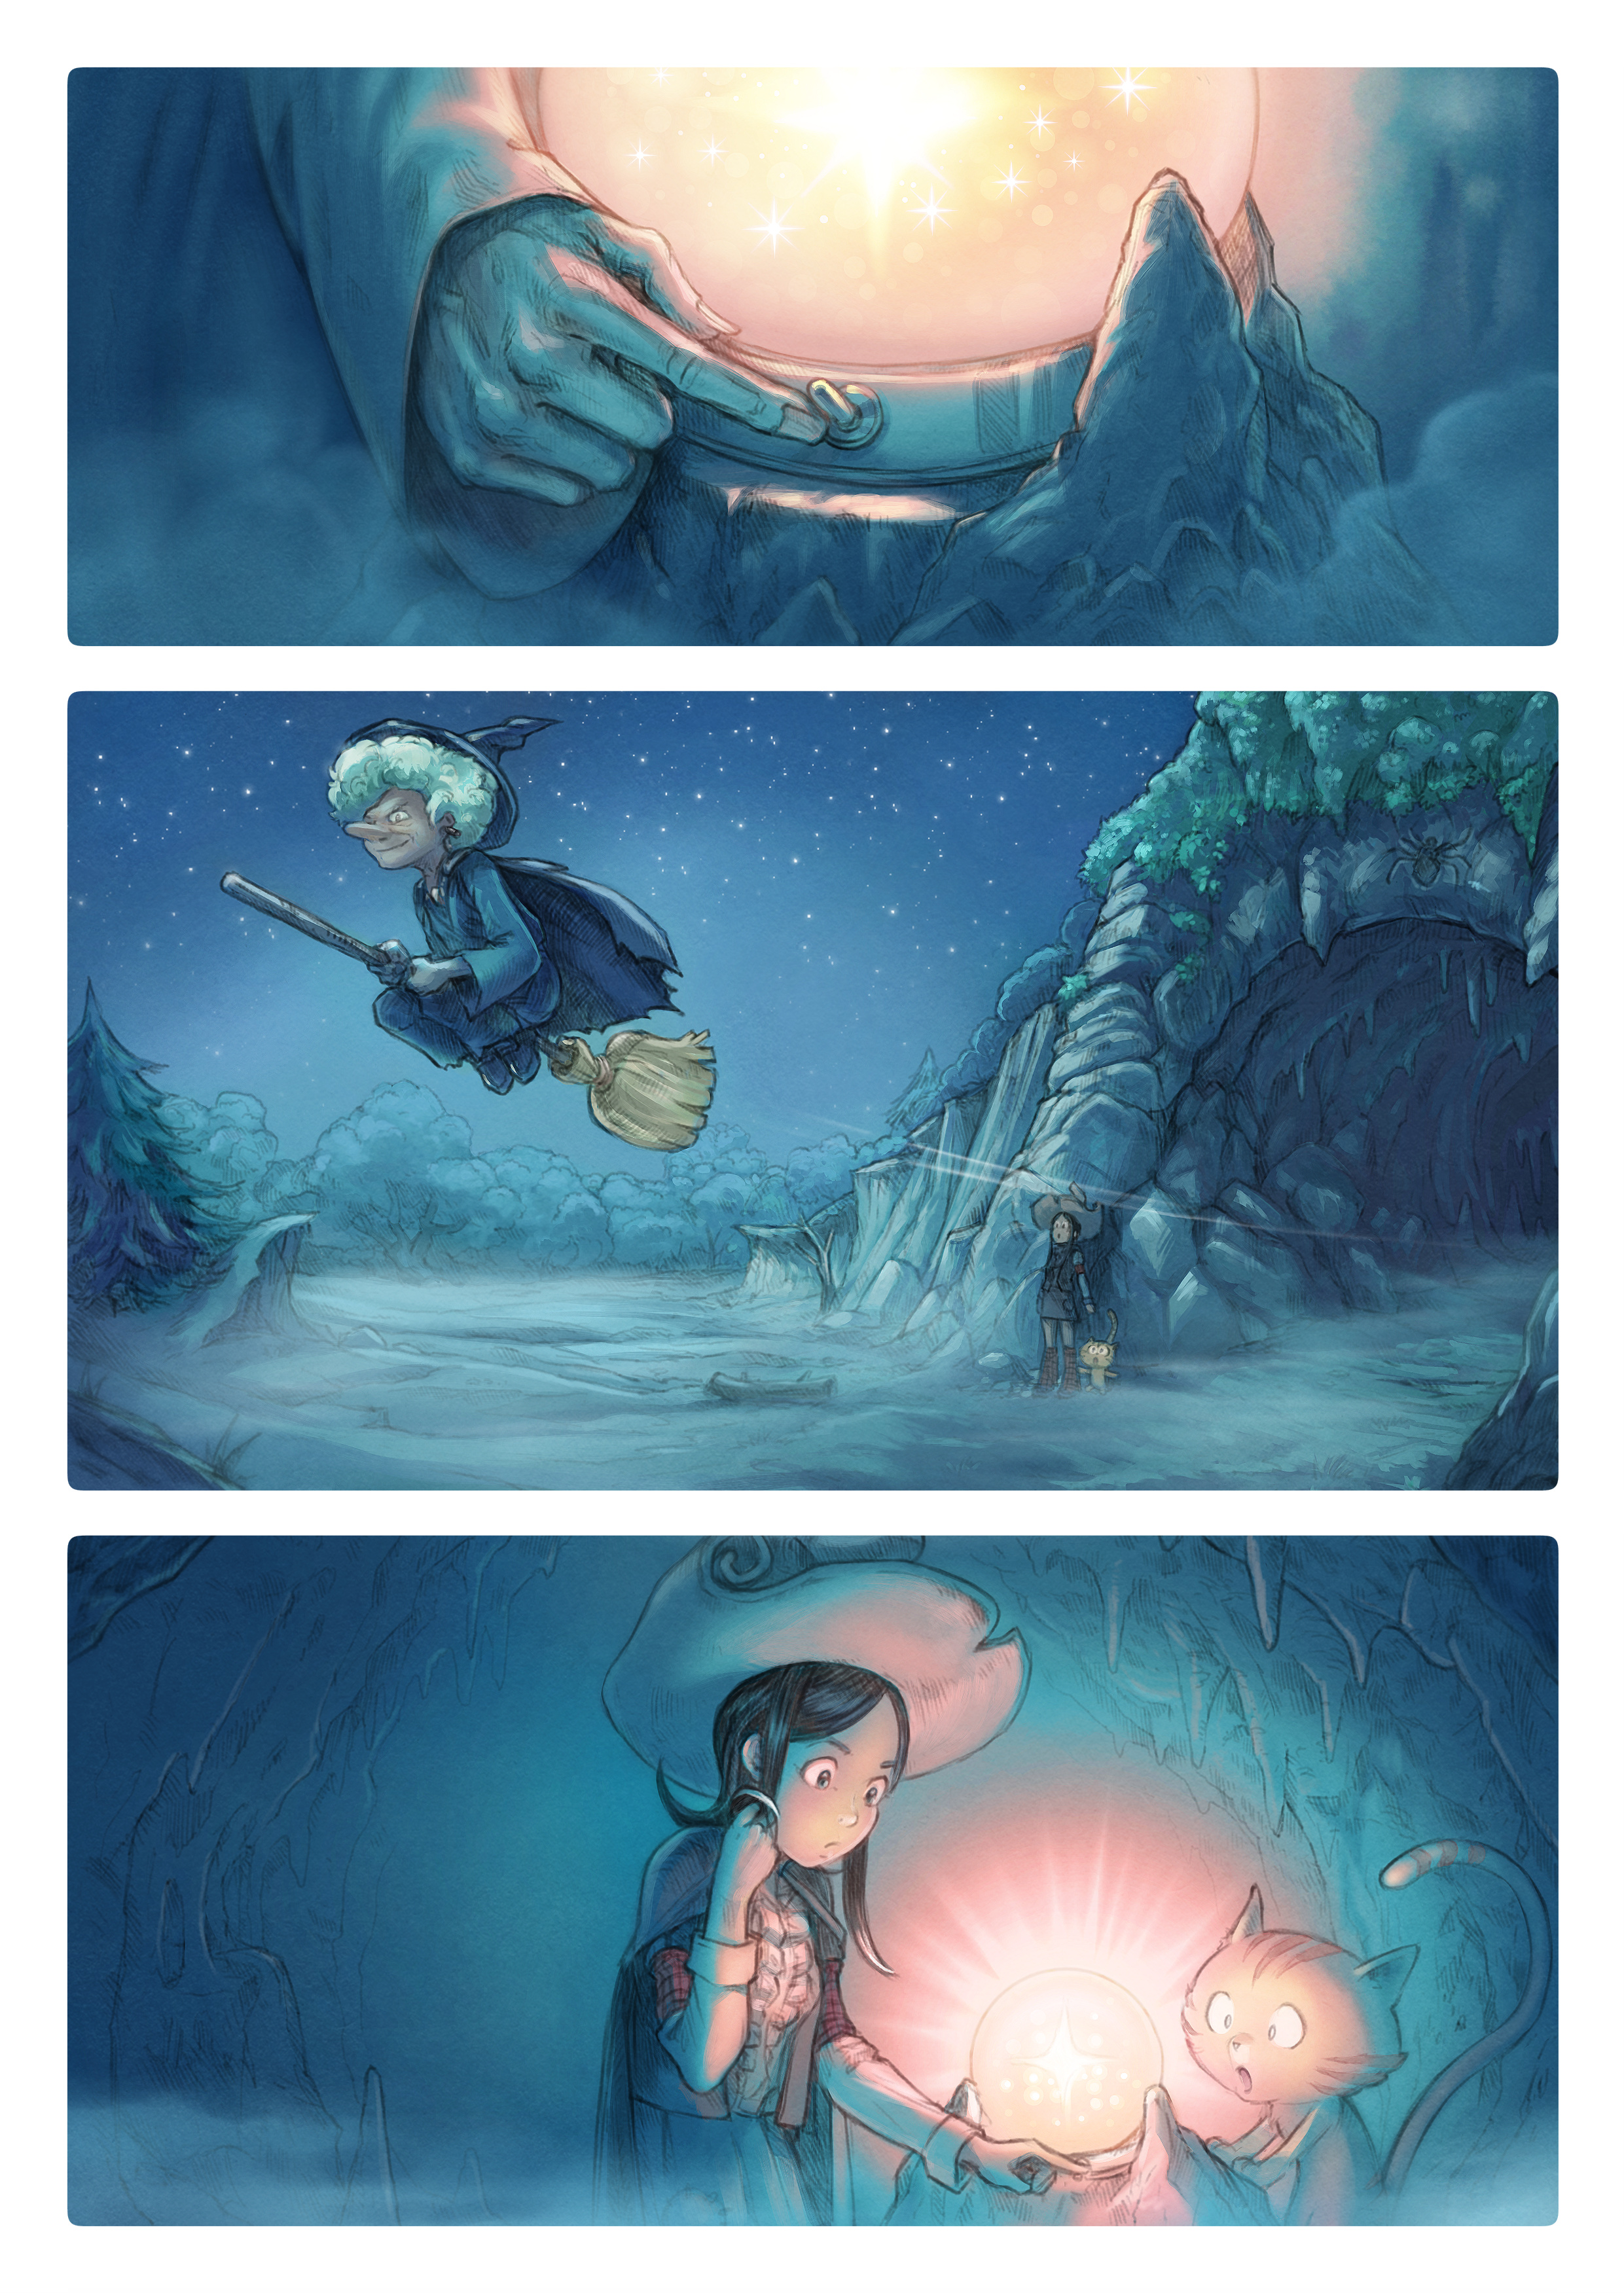 A webcomic page of Pepper&Carrot, епізод 15 [uk], стор. 2